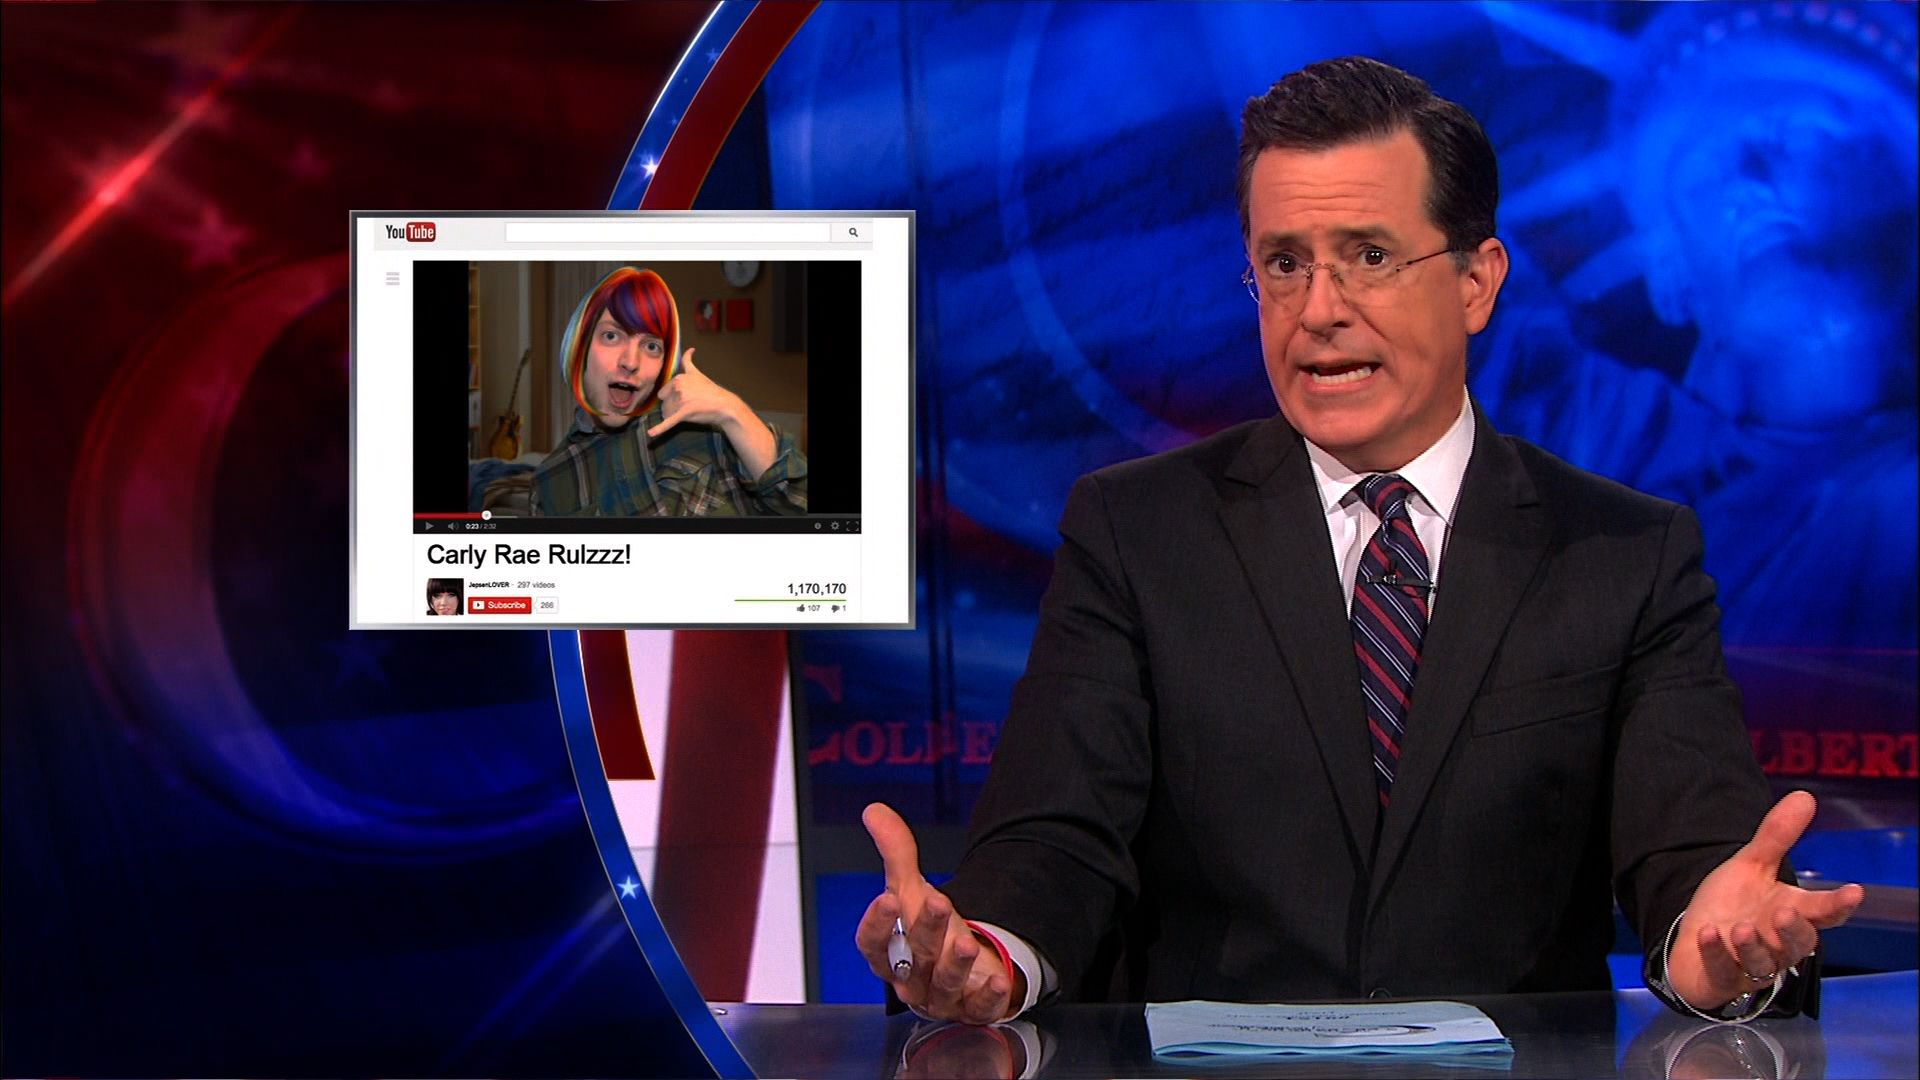 The Colbert Report Series Comedy Central Official Site ...